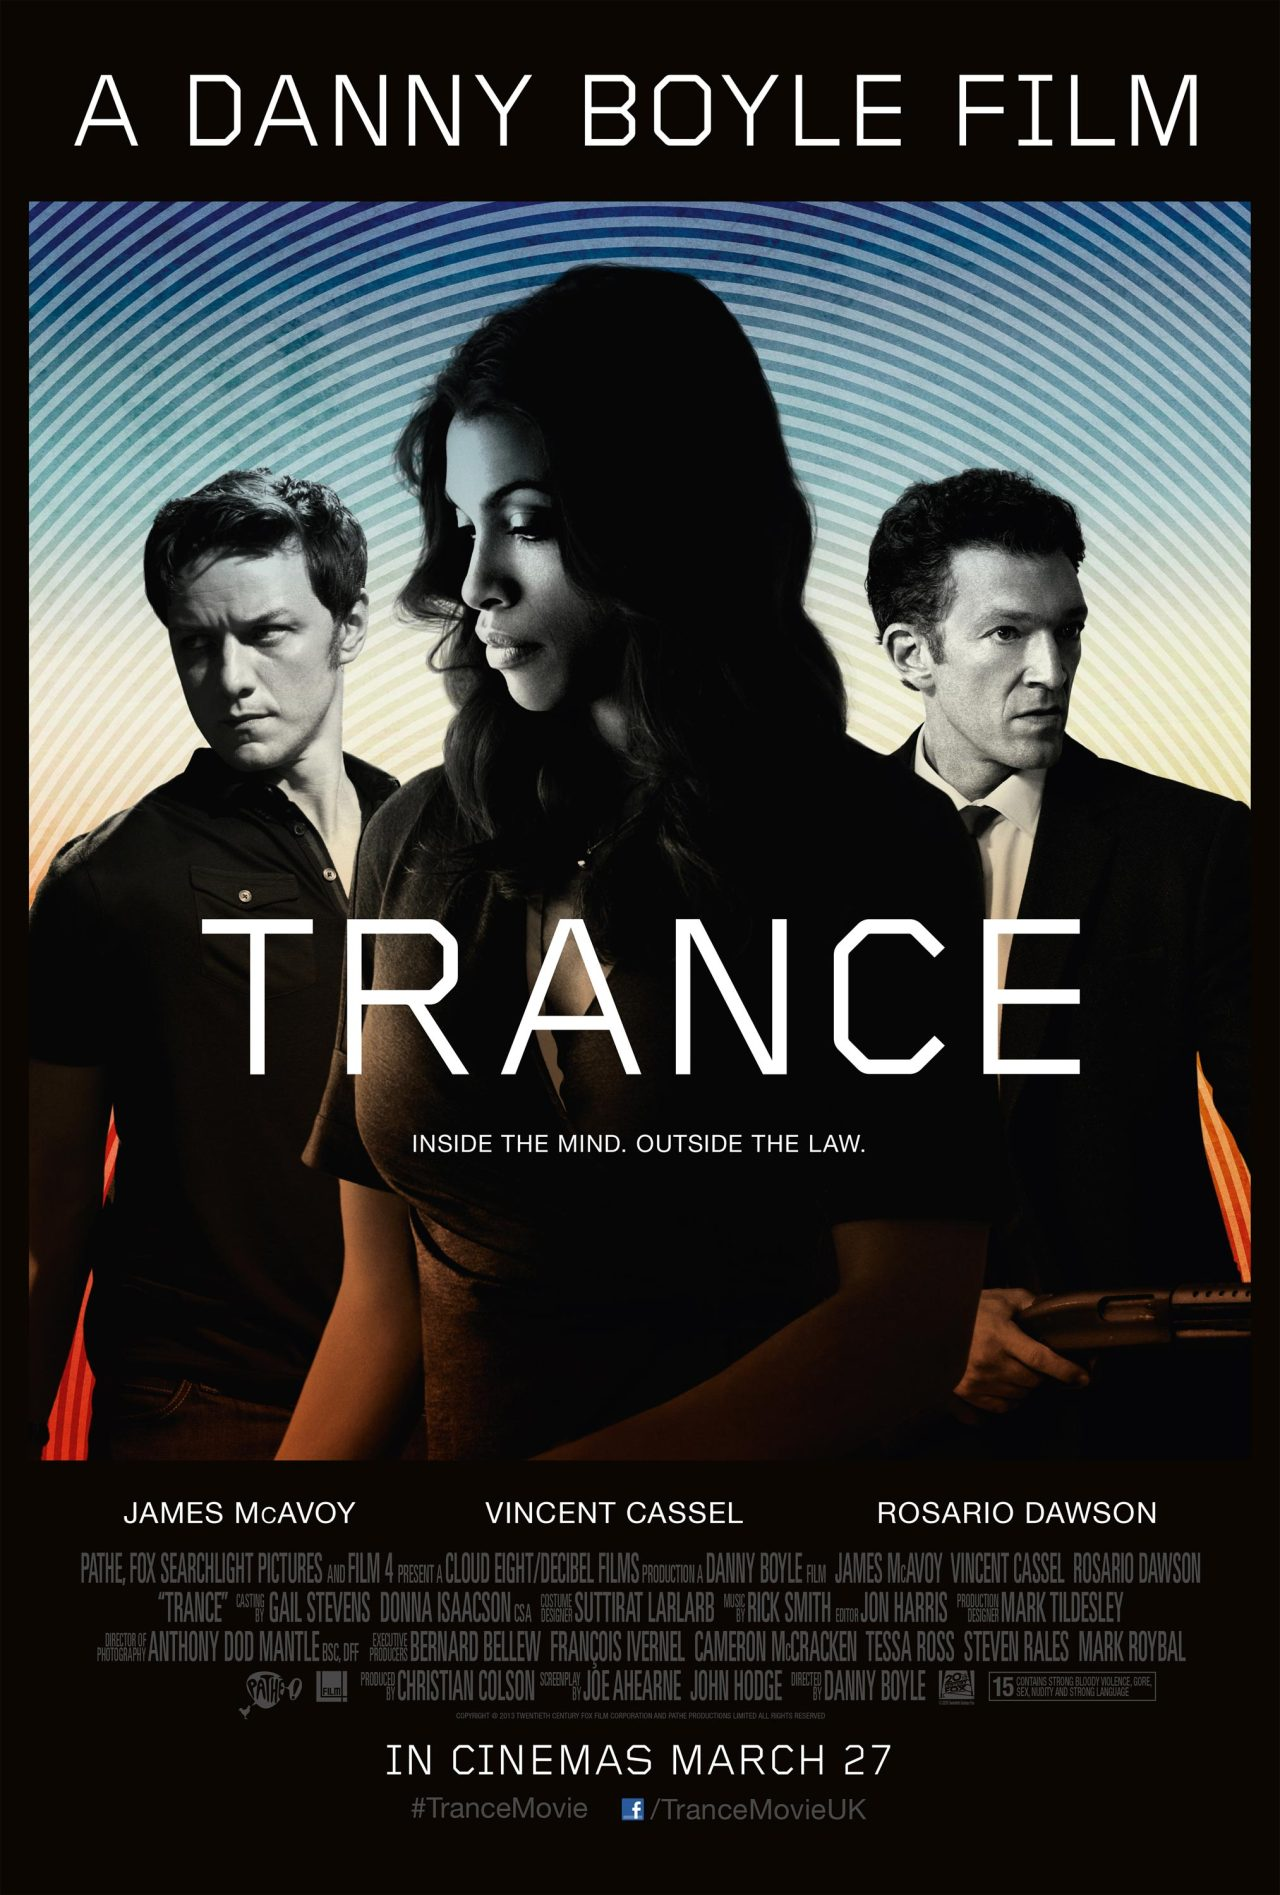 Trance (2013)   An art auctioneer who has become mixed up with a group of criminals partners with a hypnotherapist in order to recover a lost painting.   This was a load of rubbish!!! The plot was incredibly stupid, was not original. Really not worth one's time. Click on the poster above to see the film's trailer on YouTube.